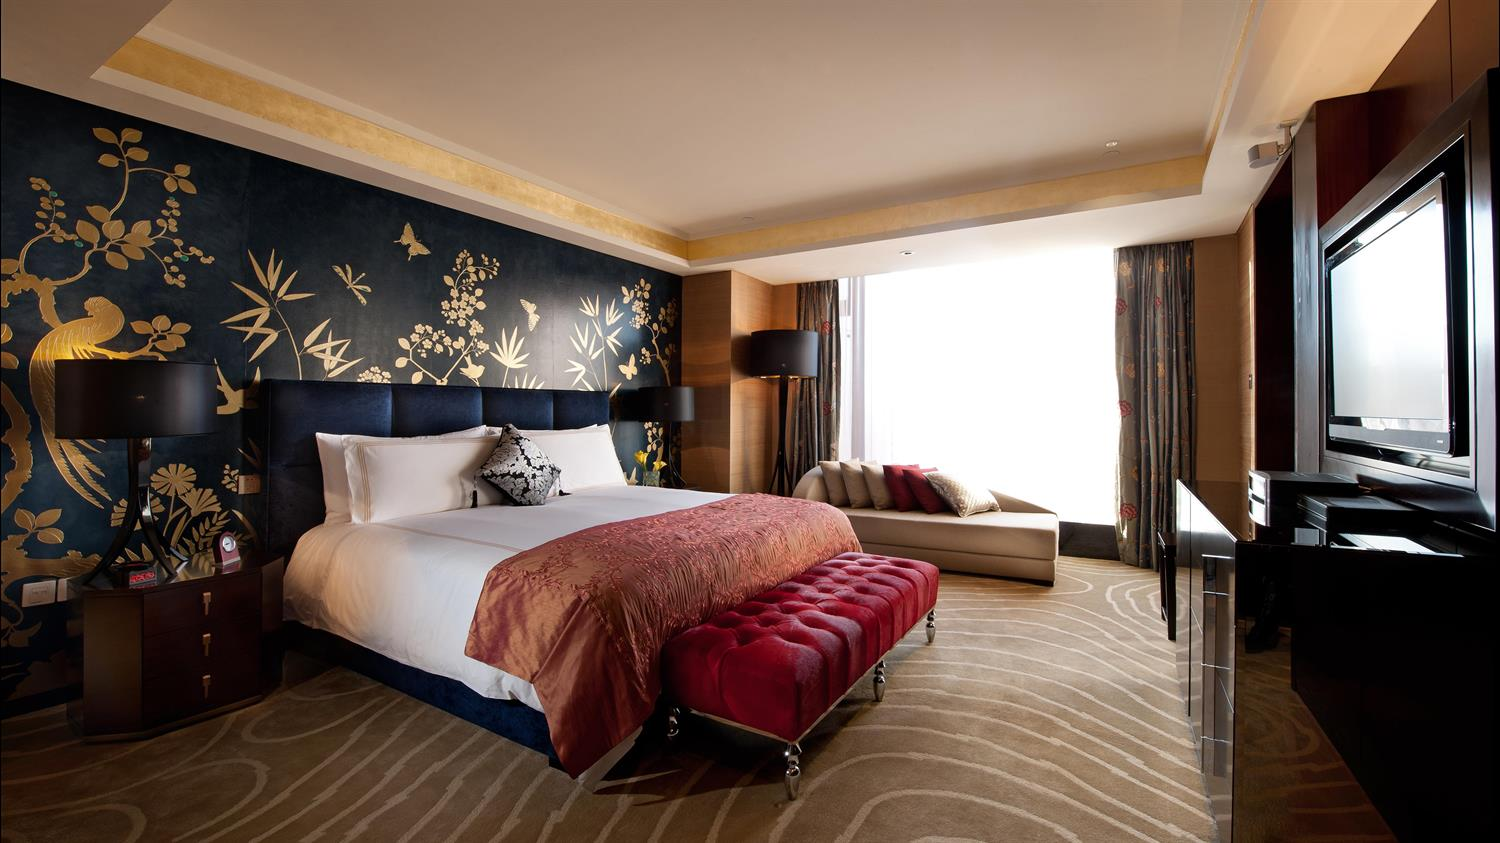 The bedroom within the Presidential Suite at the Fairmont Beijing